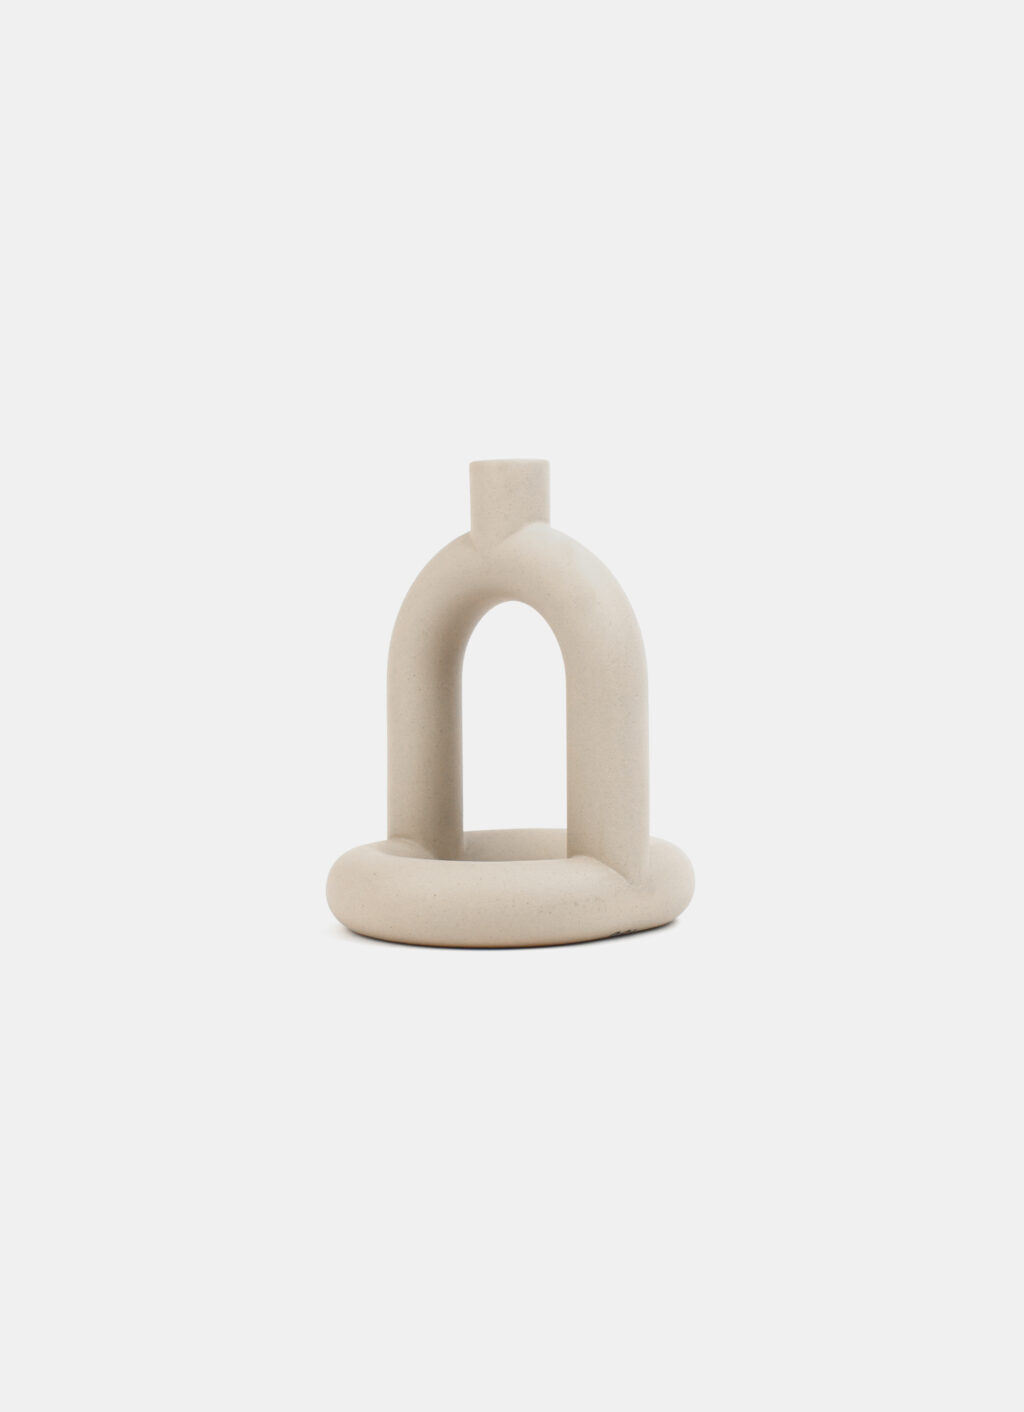 Noi Doi - Kapp Candle Holder - Stoneware - available in - Sand - Ivory - Speckled white